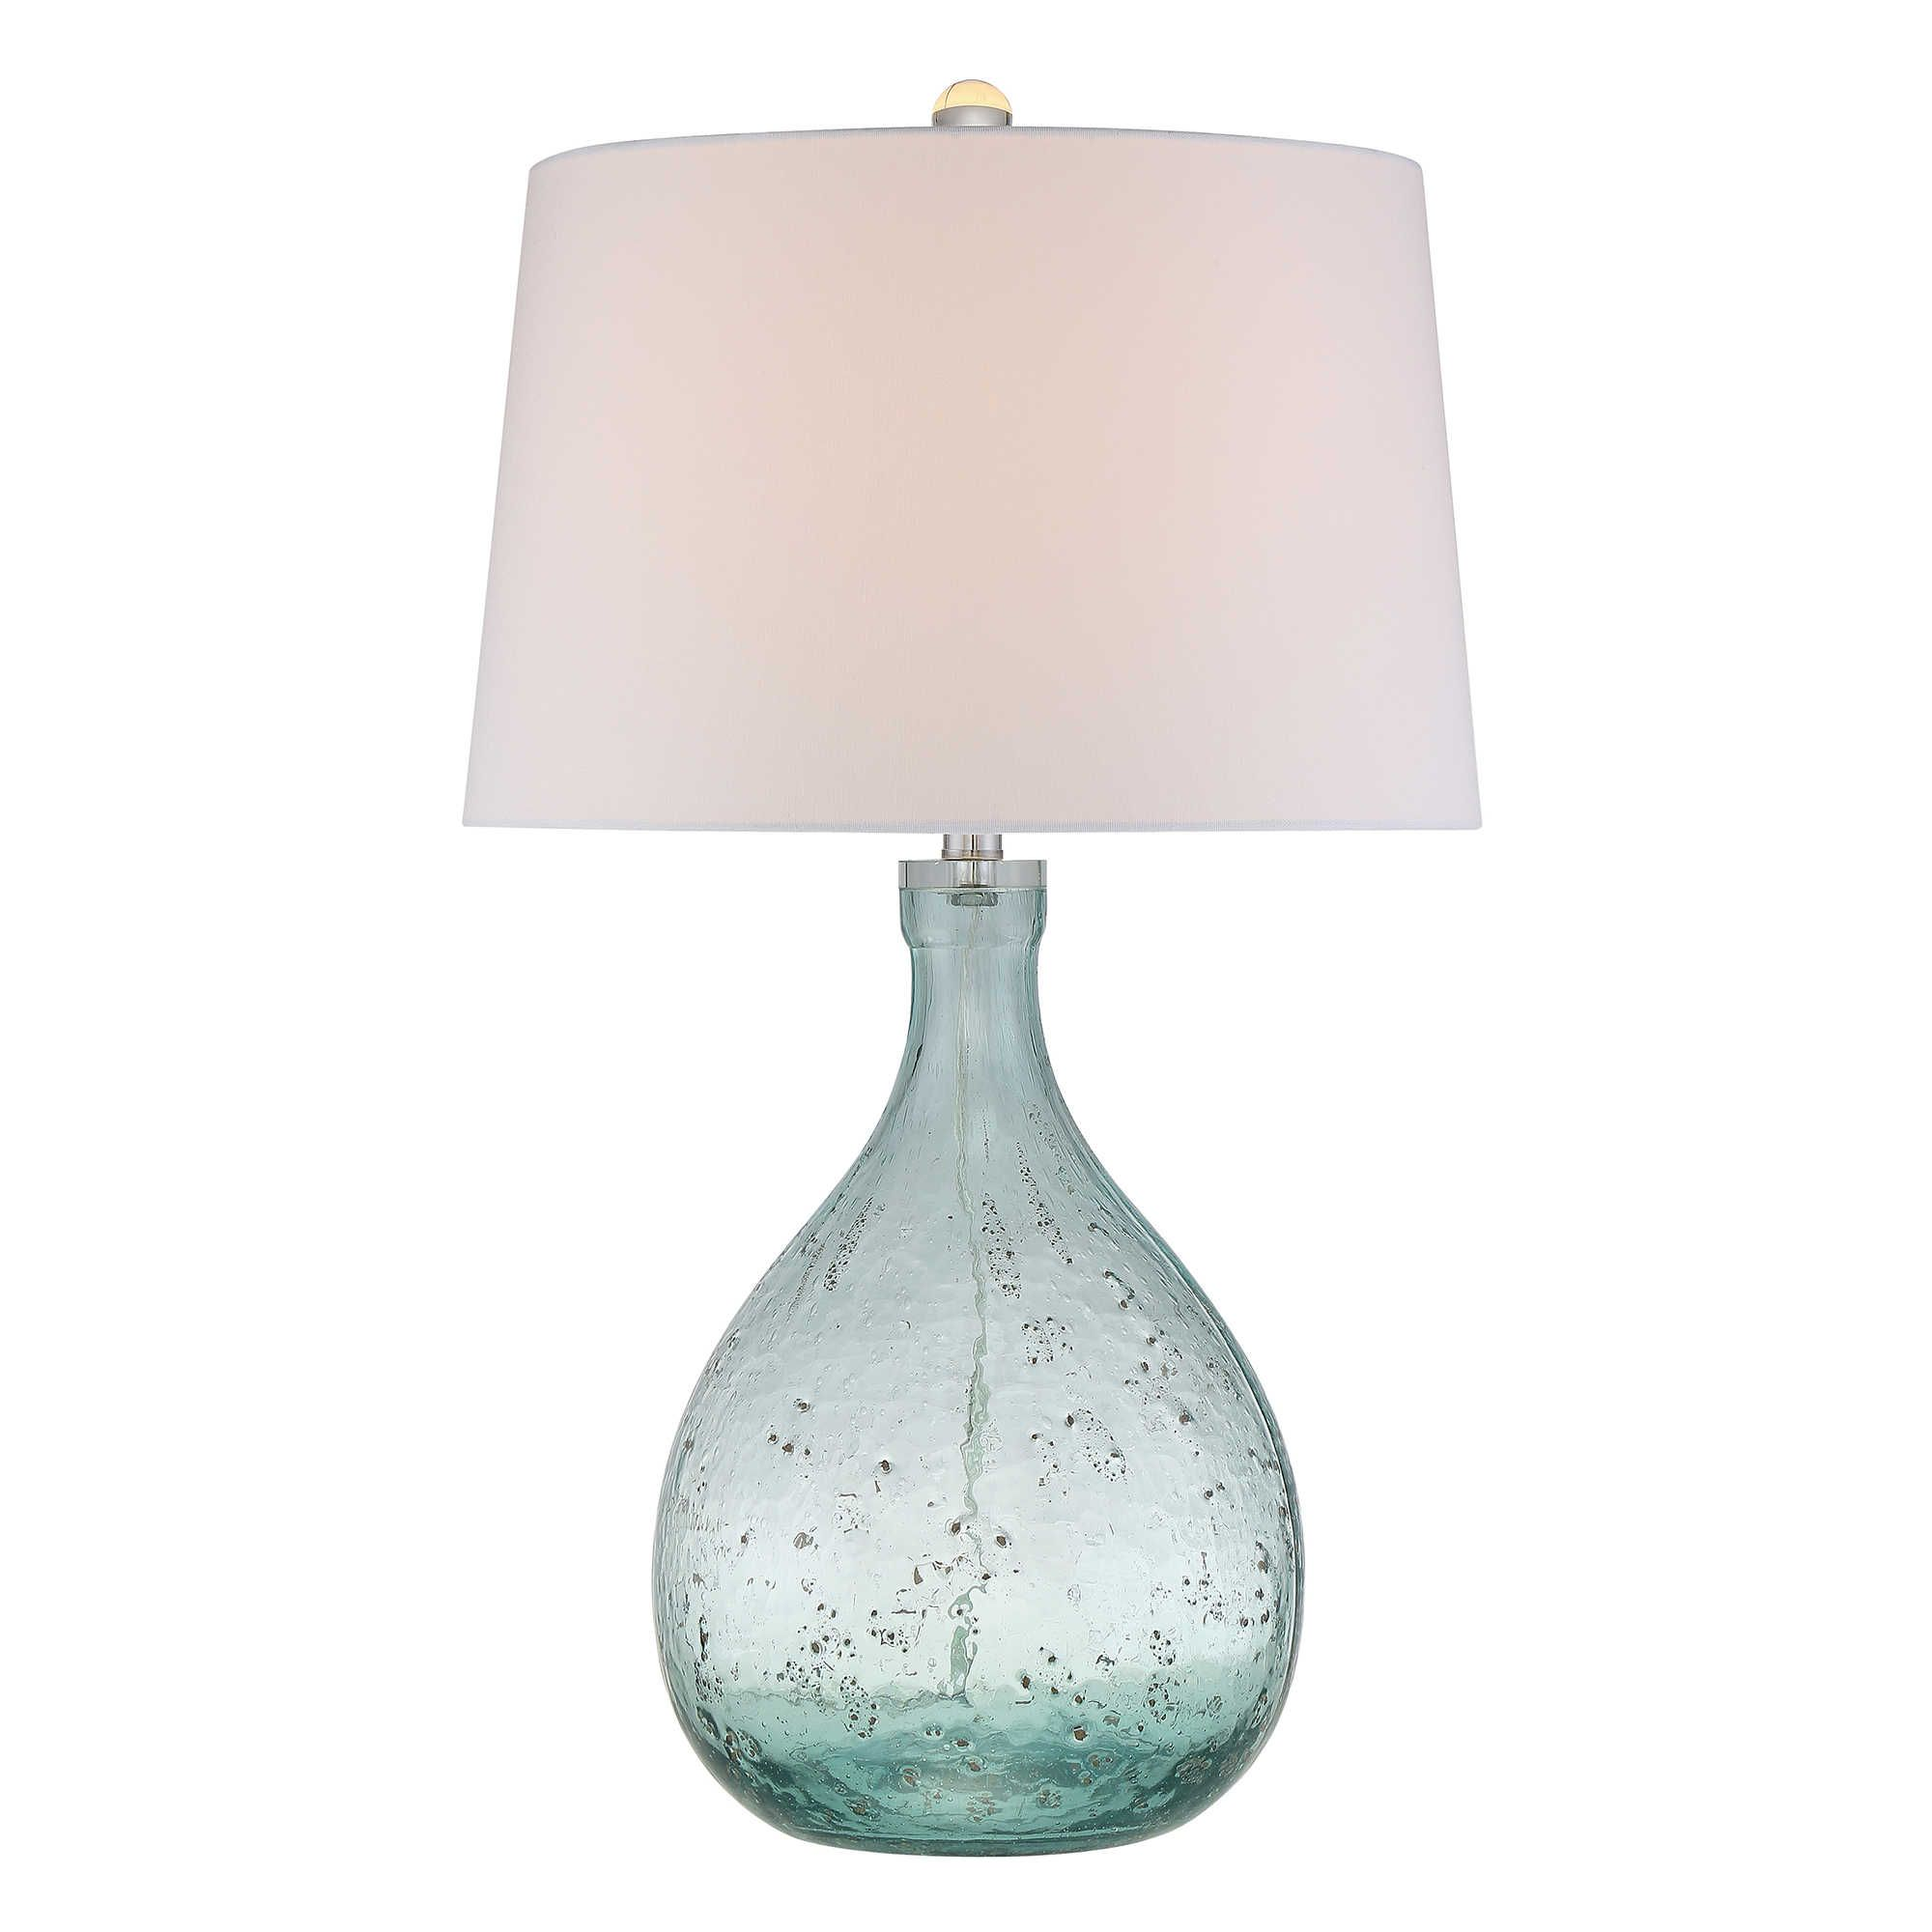 our lenox quoizel lamps light price ambient the lamp accentuates pin list table